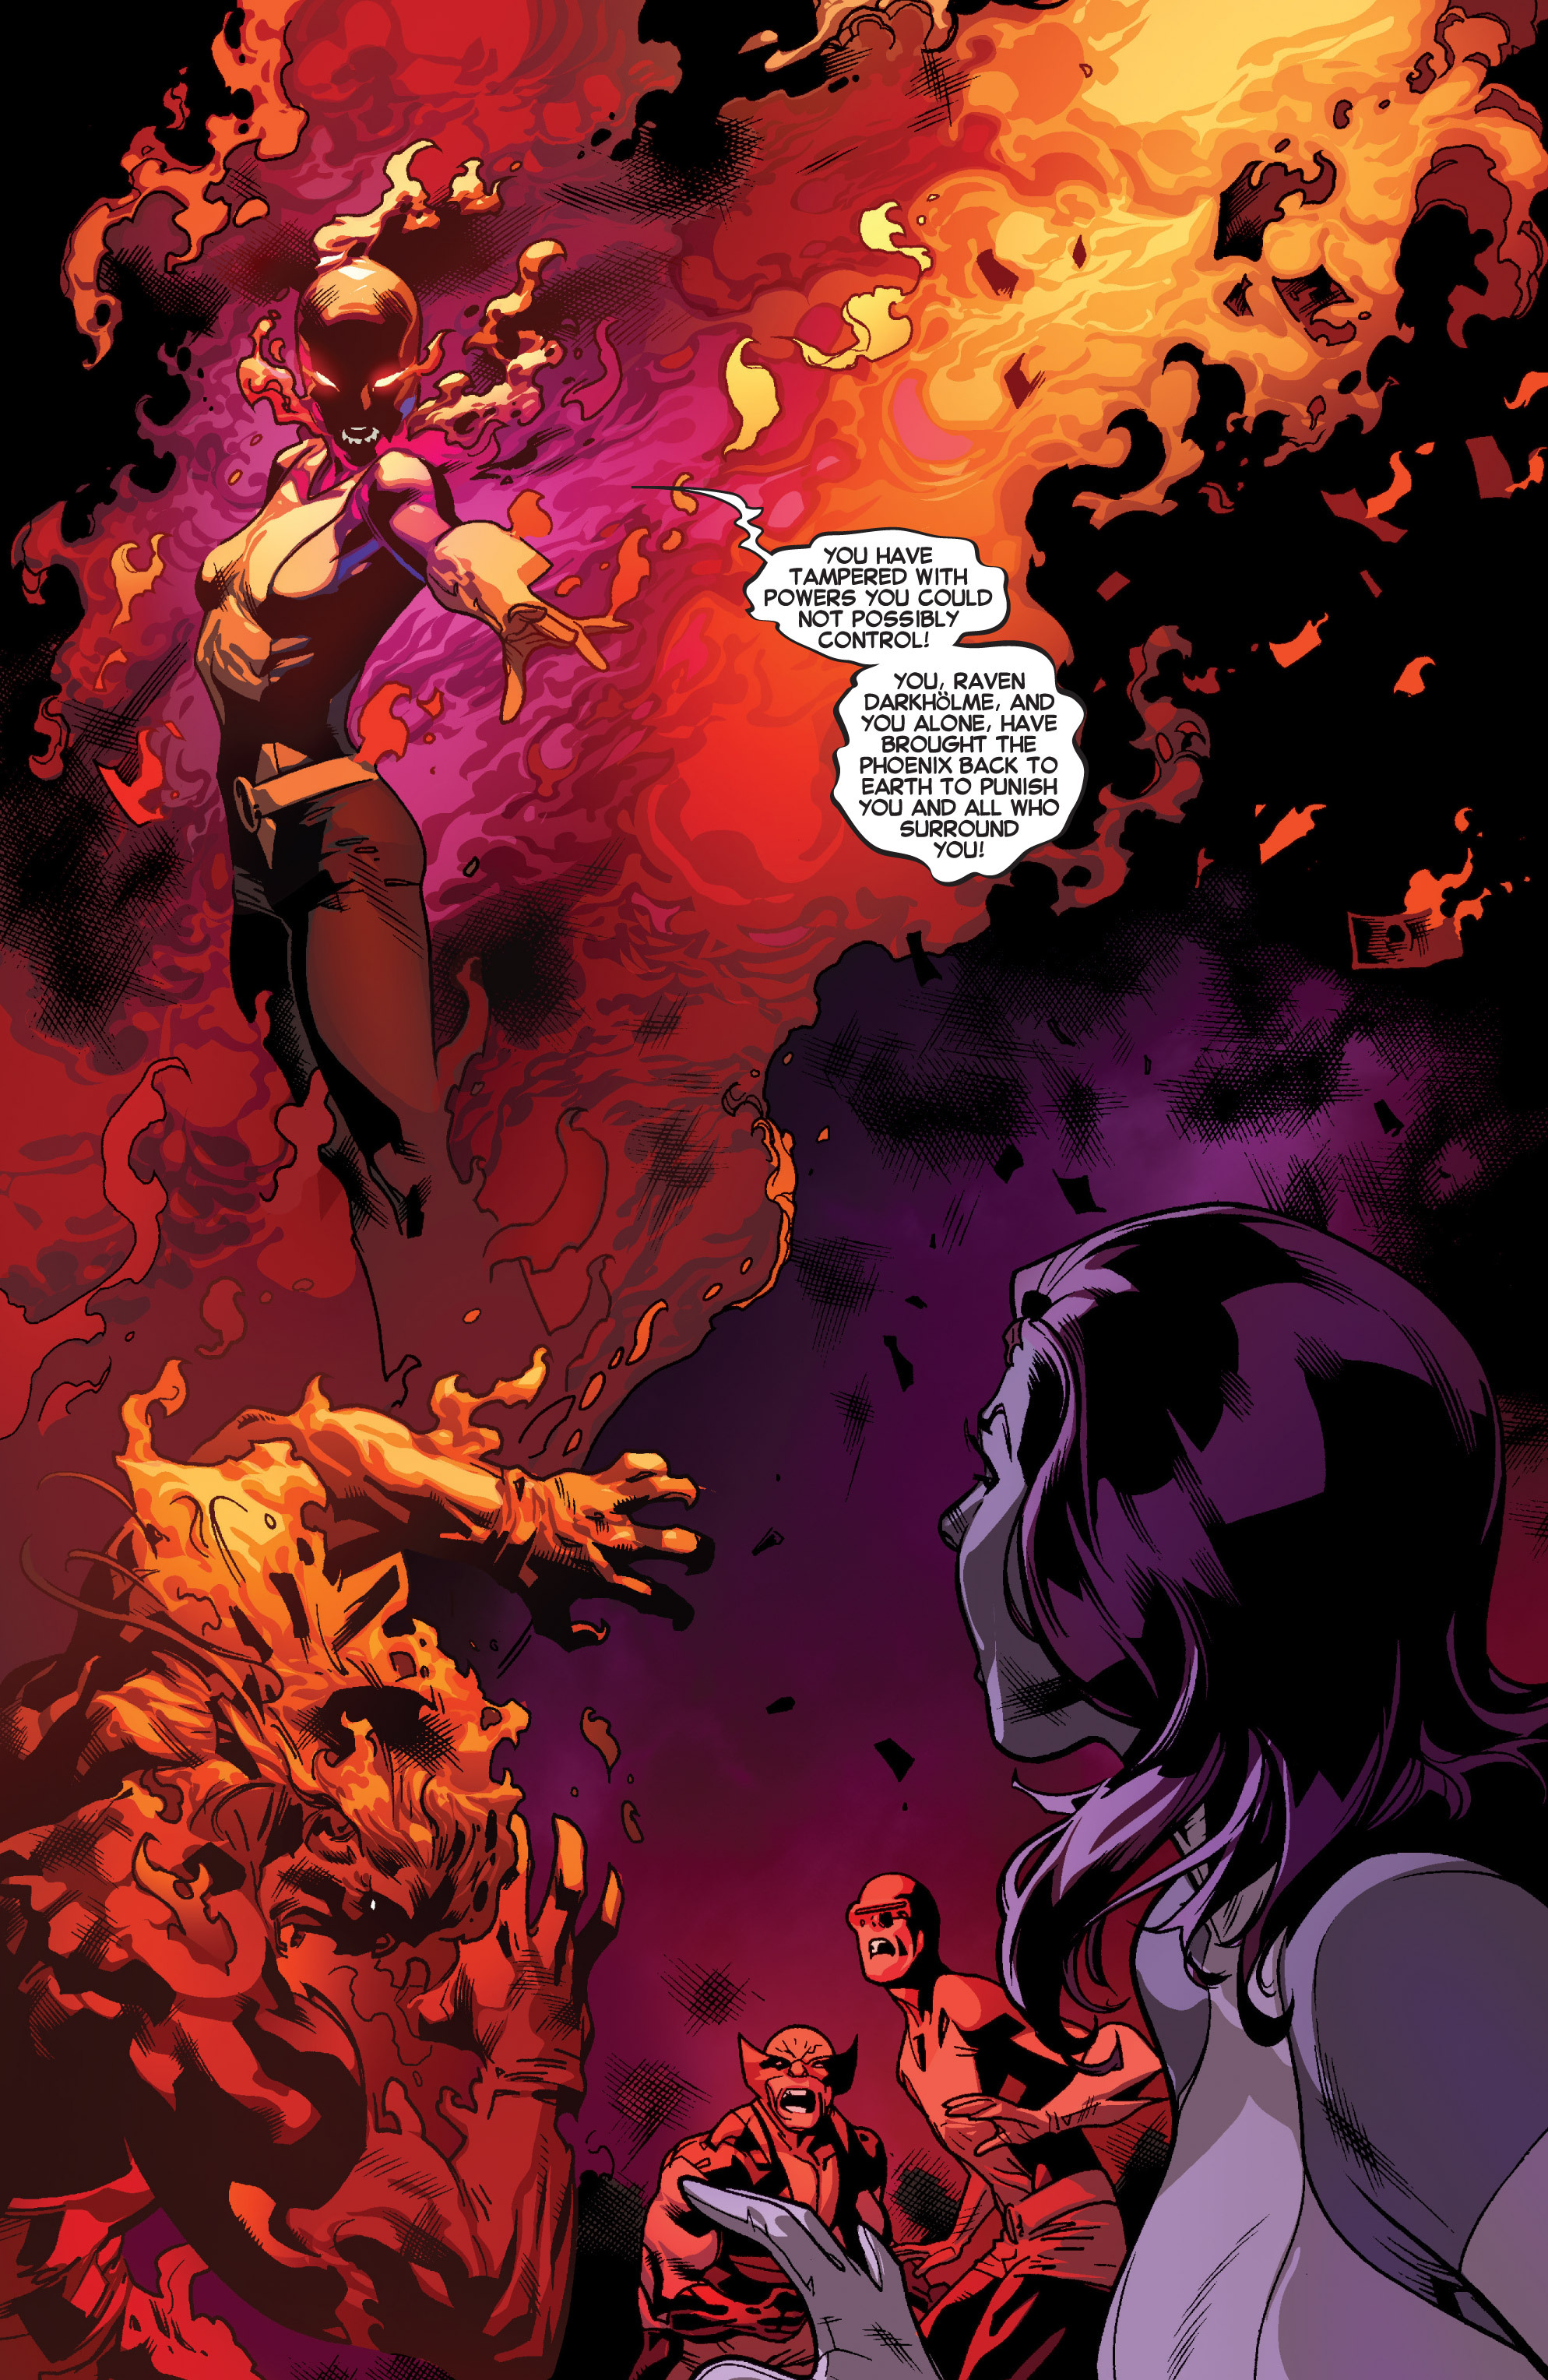 Read online All-New X-Men (2013) comic -  Issue # _Special - Out Of Their Depth - 71